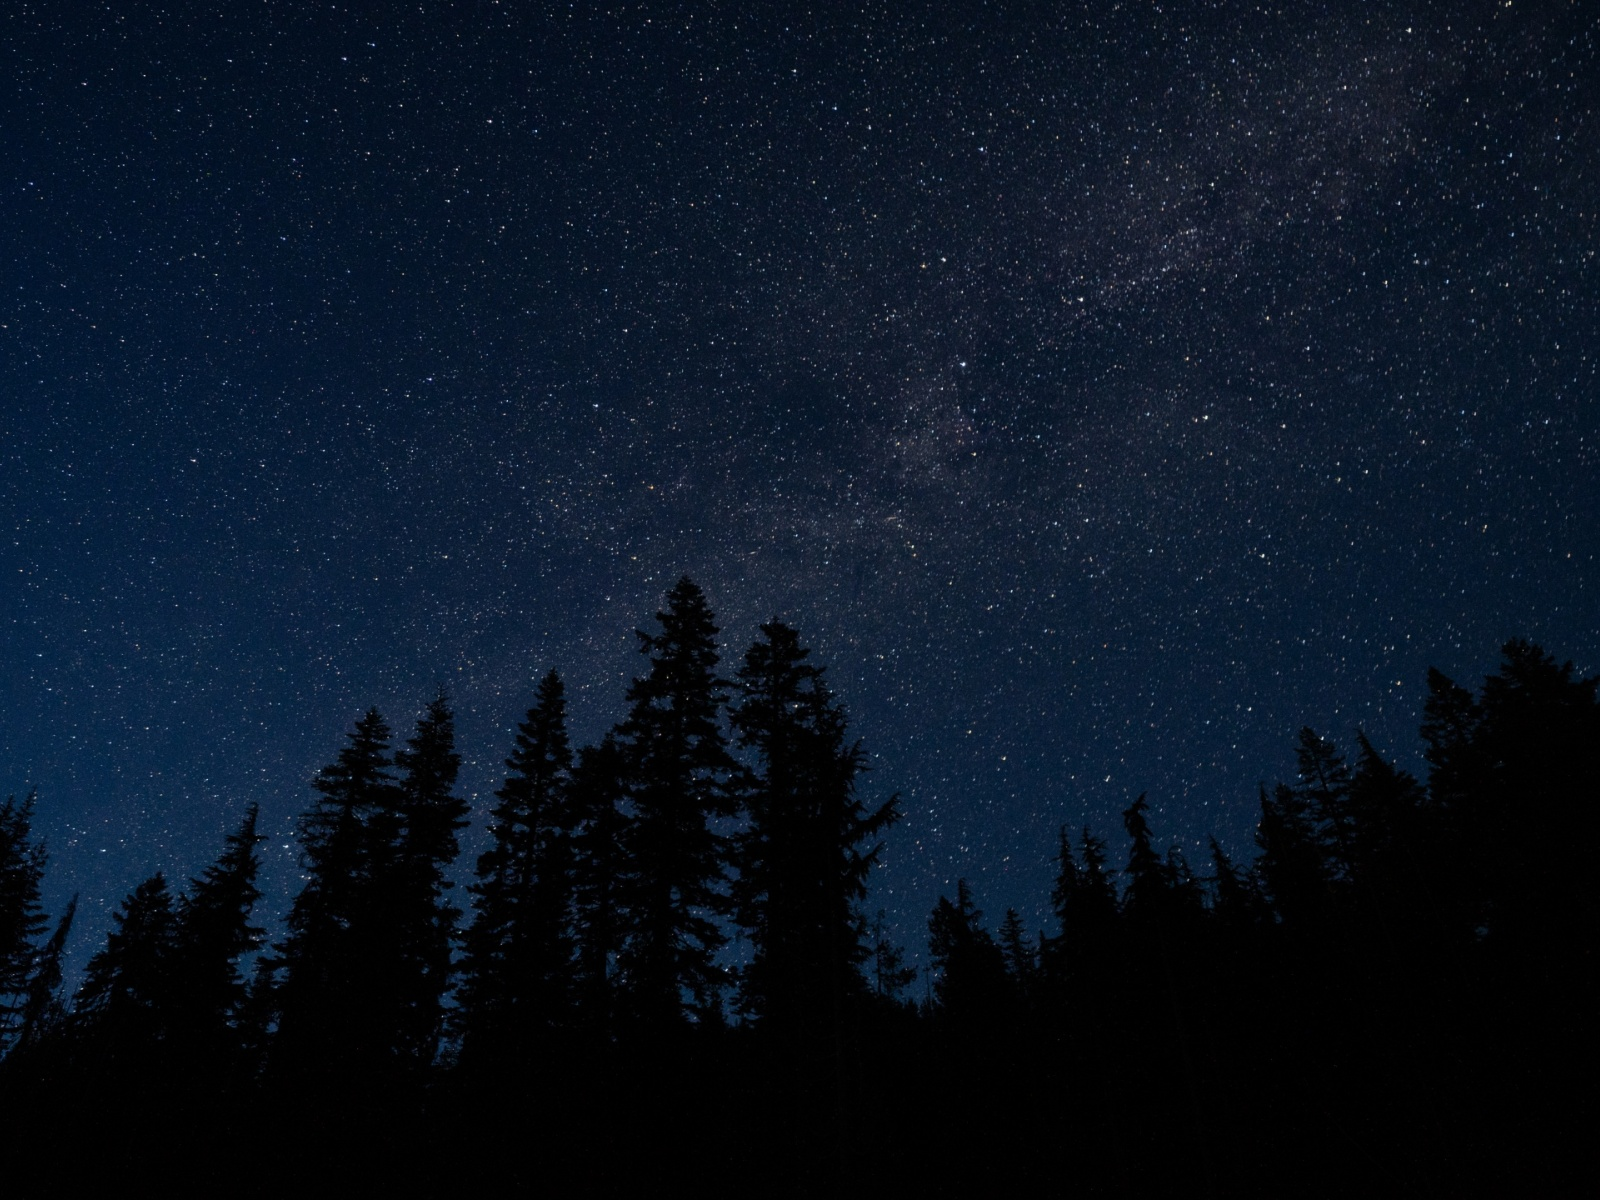 1600x1200 starry sky, trees, night, radi